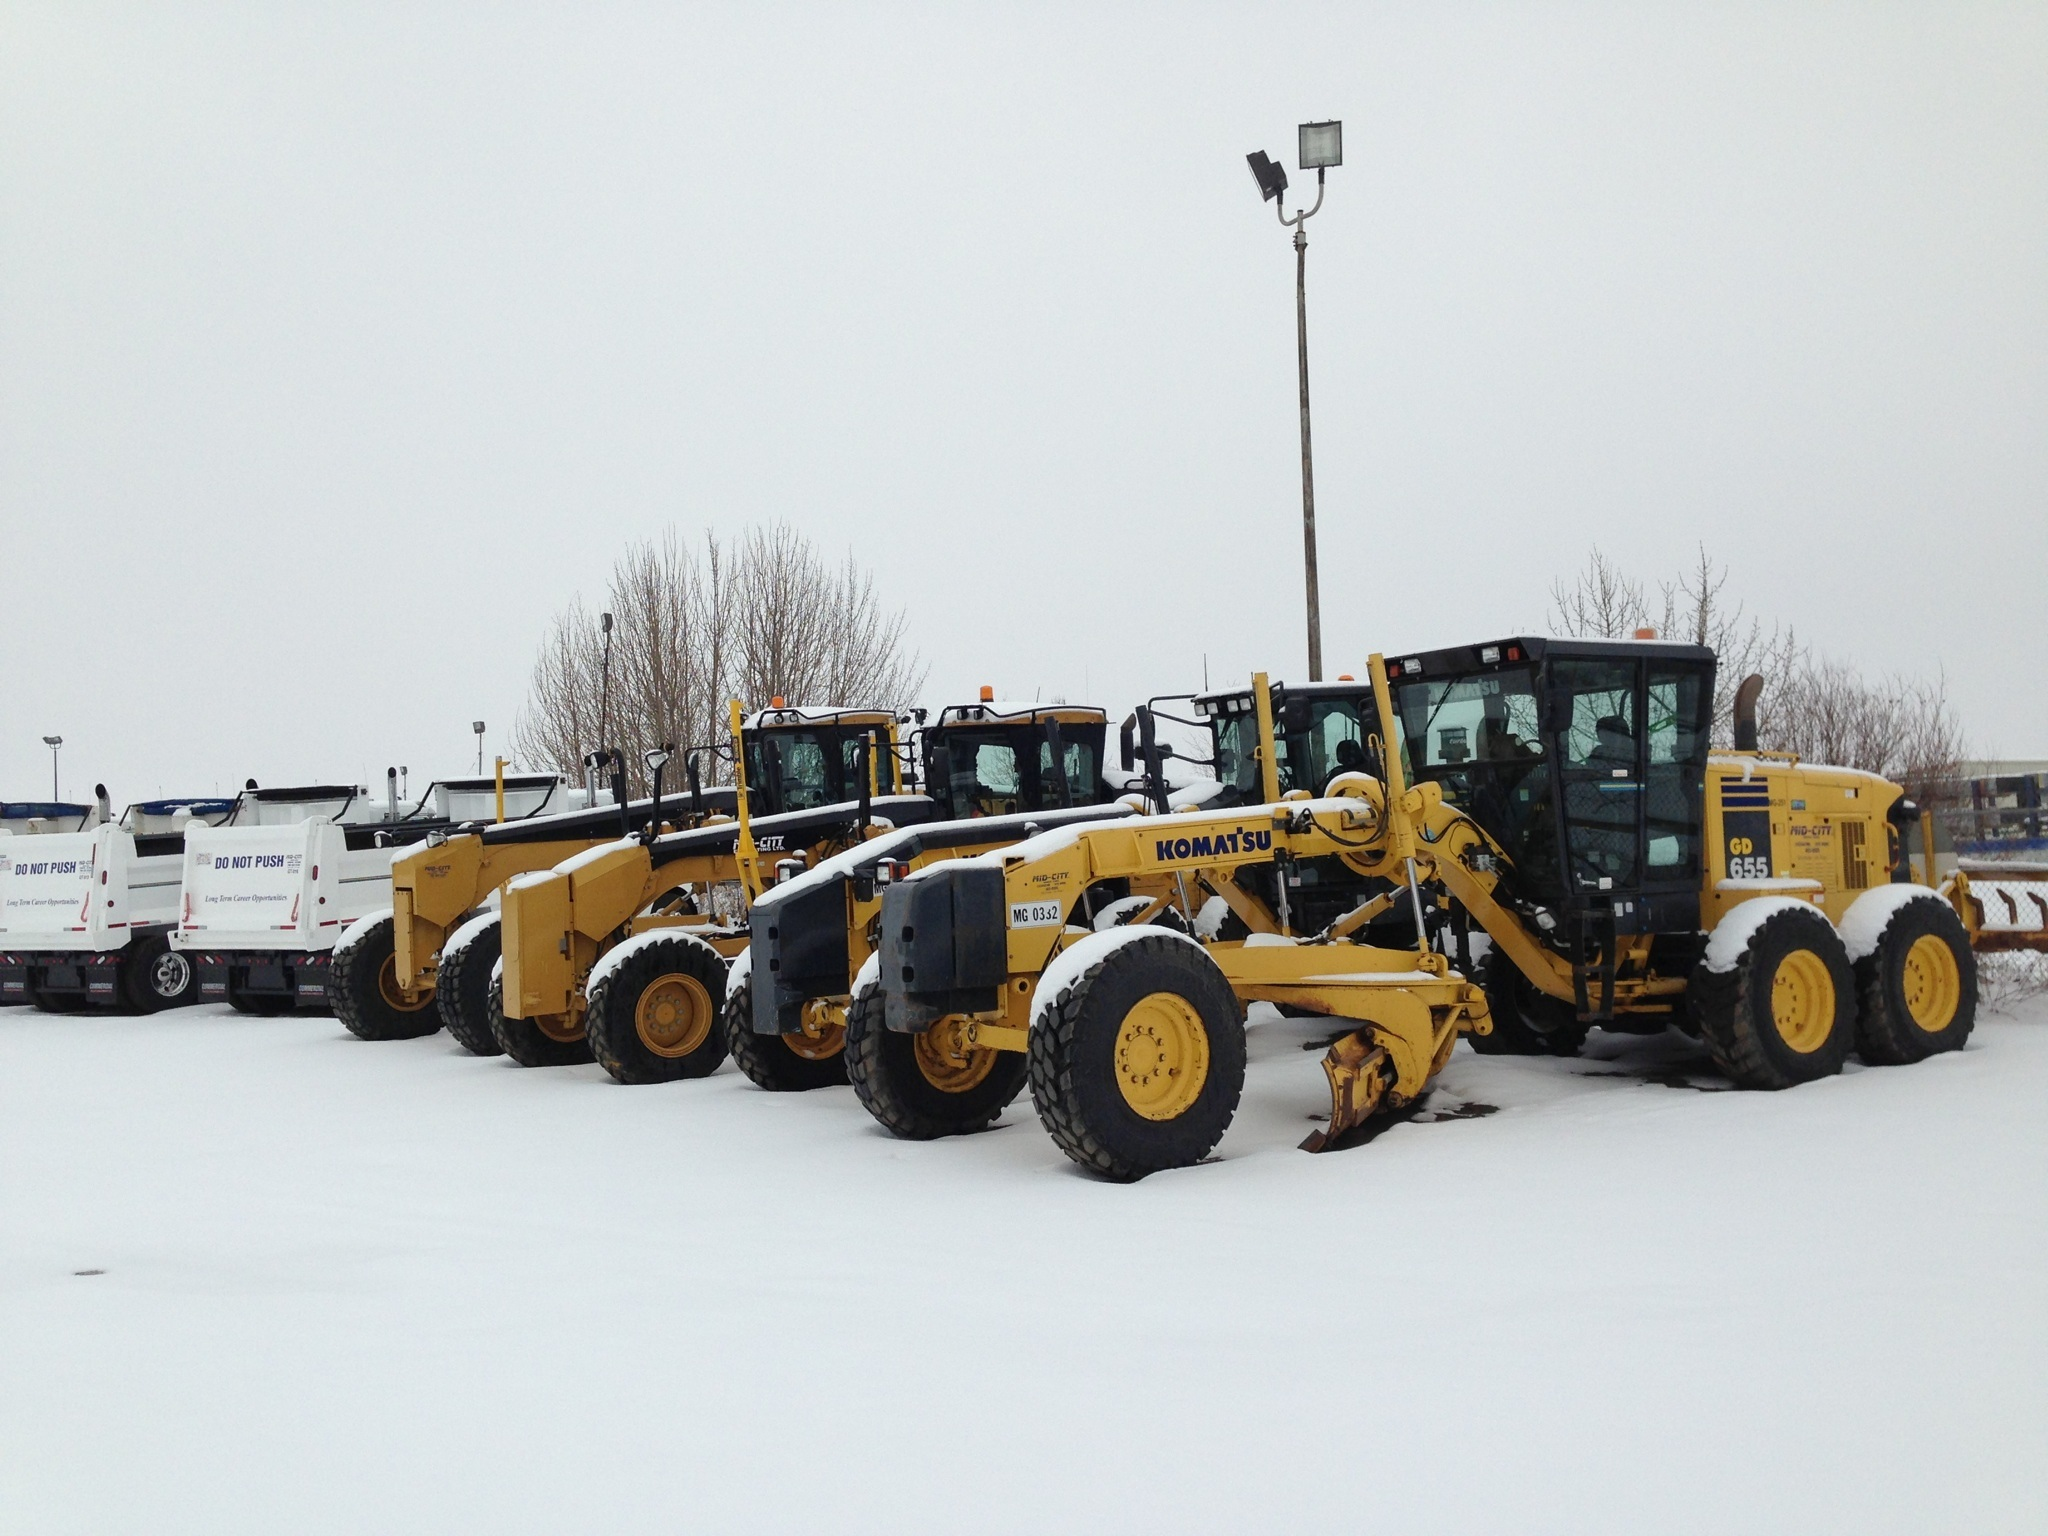 Graders Snow Removal - Mid-City Construction Management